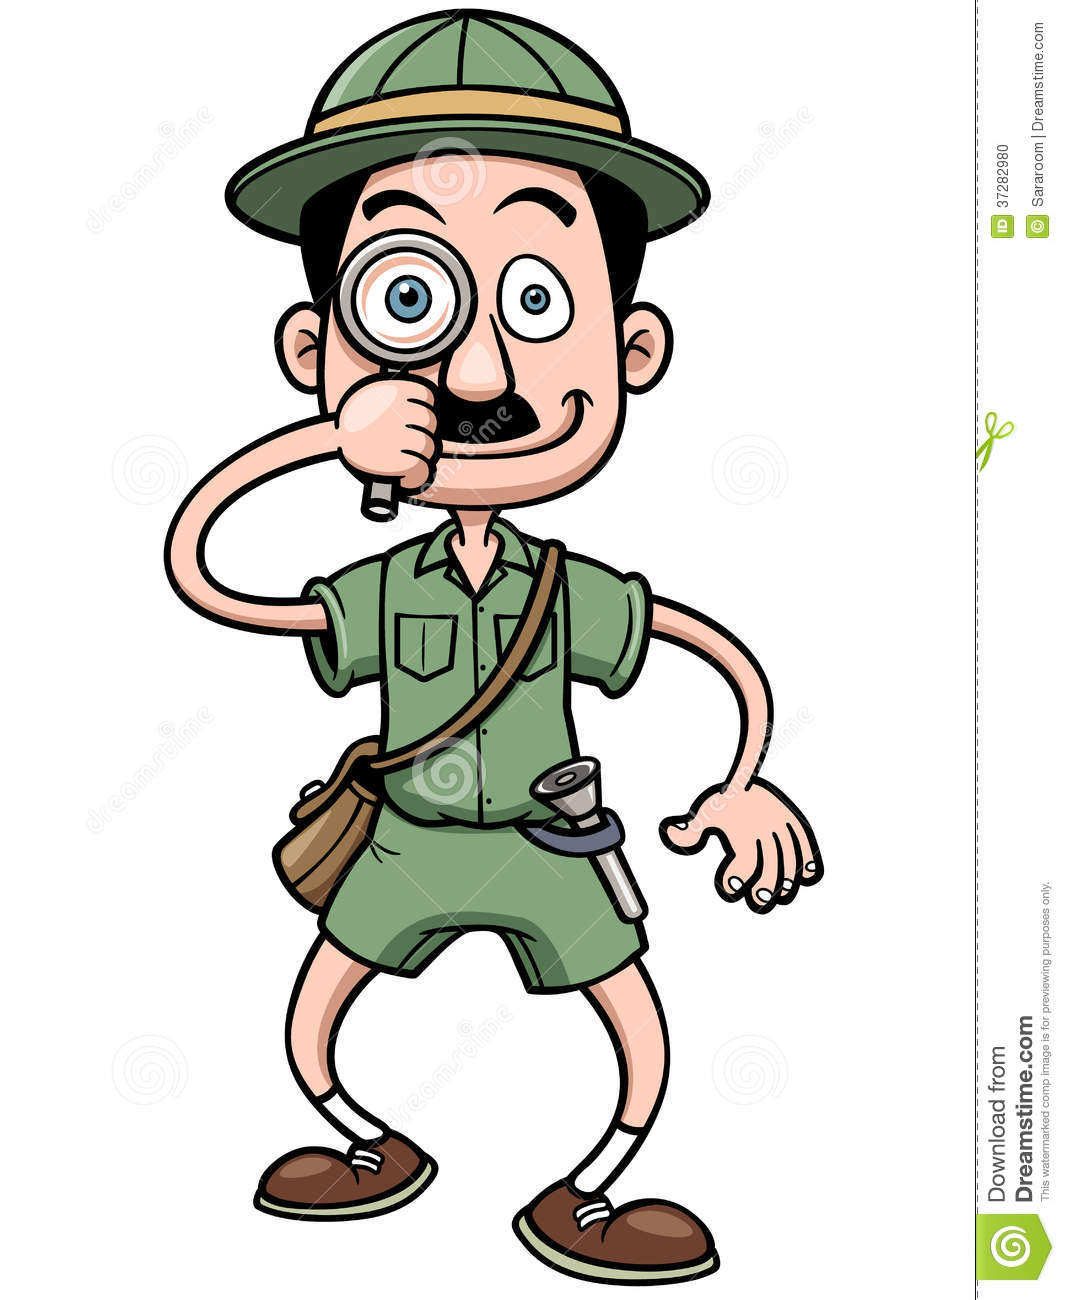 Vector illustration of Cartoon Safari man holding magnifying glass.